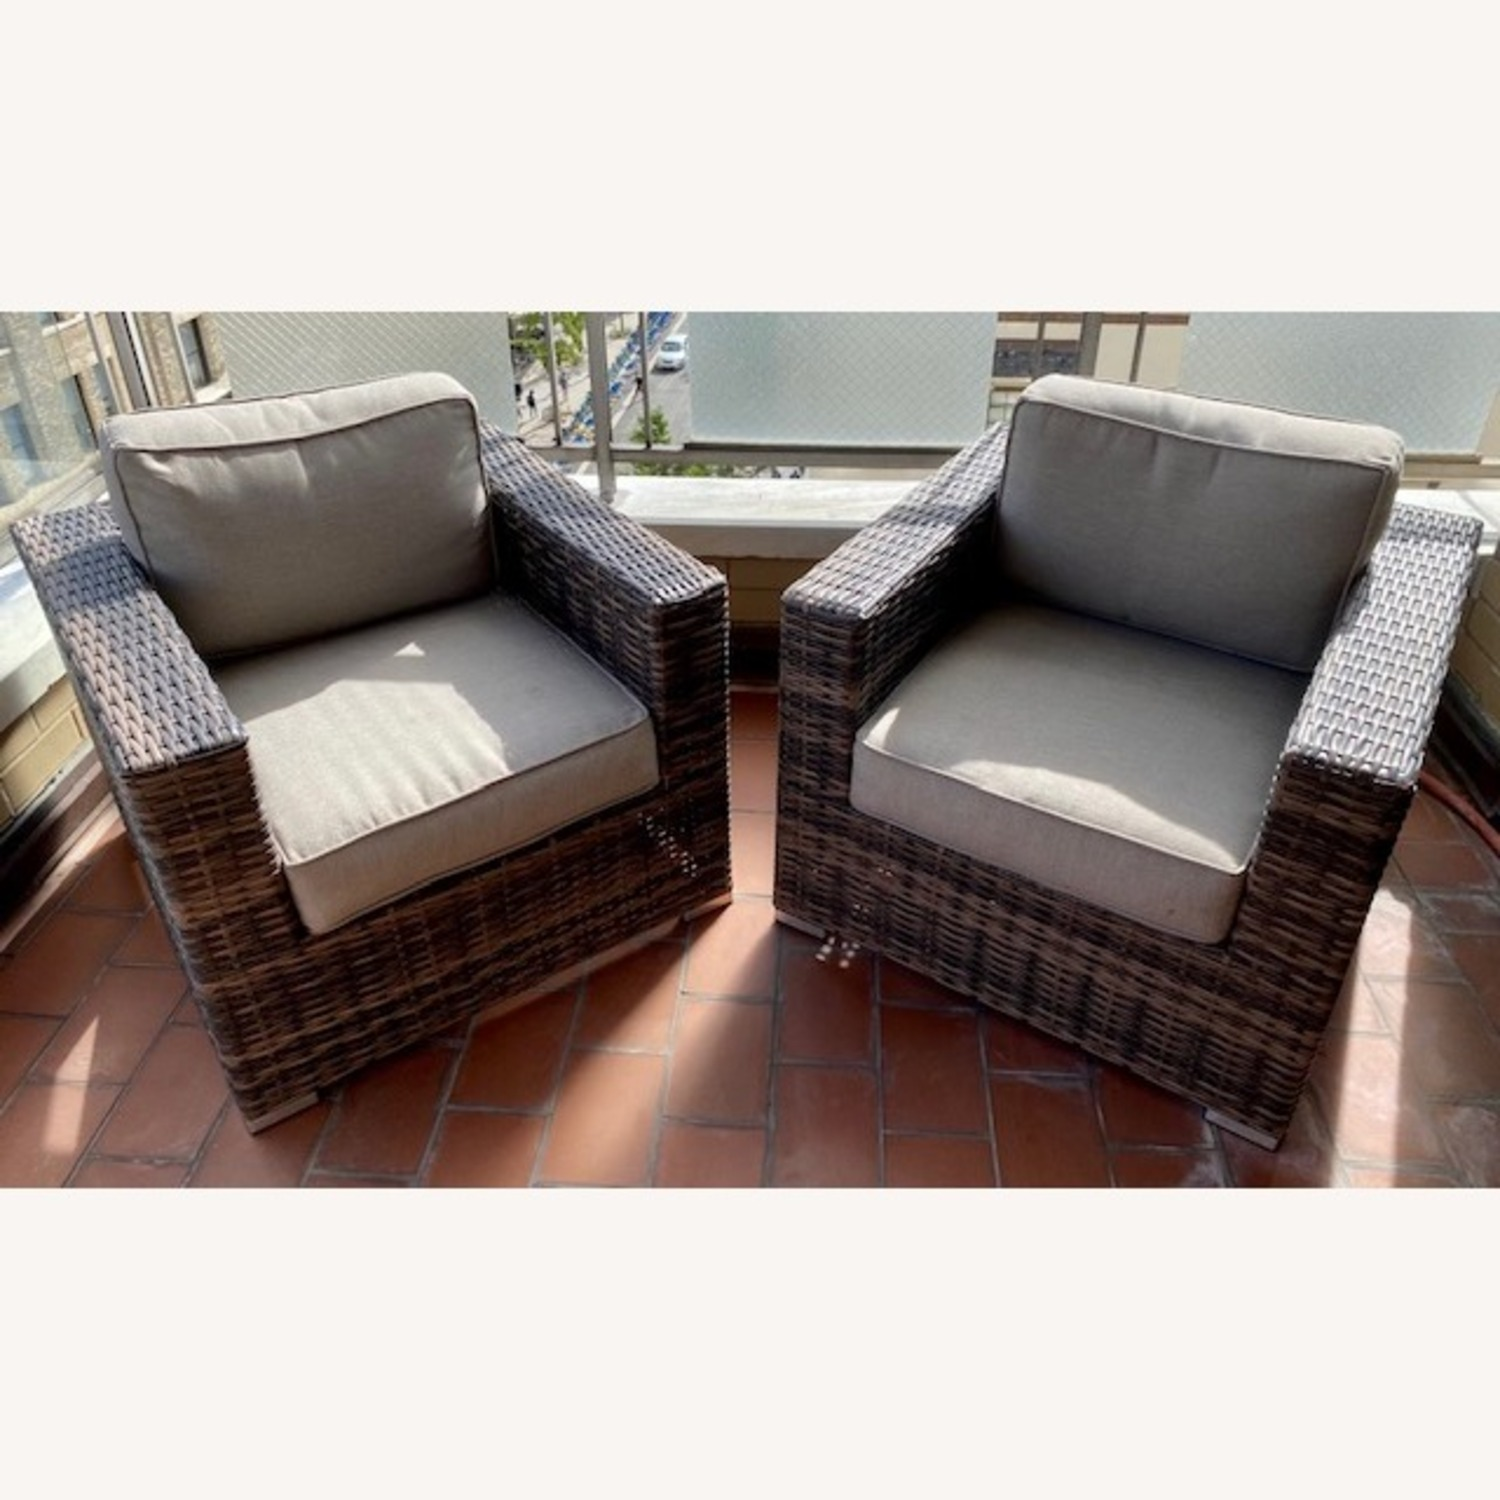 Modern Outdoor Lounge Chairs - image-0